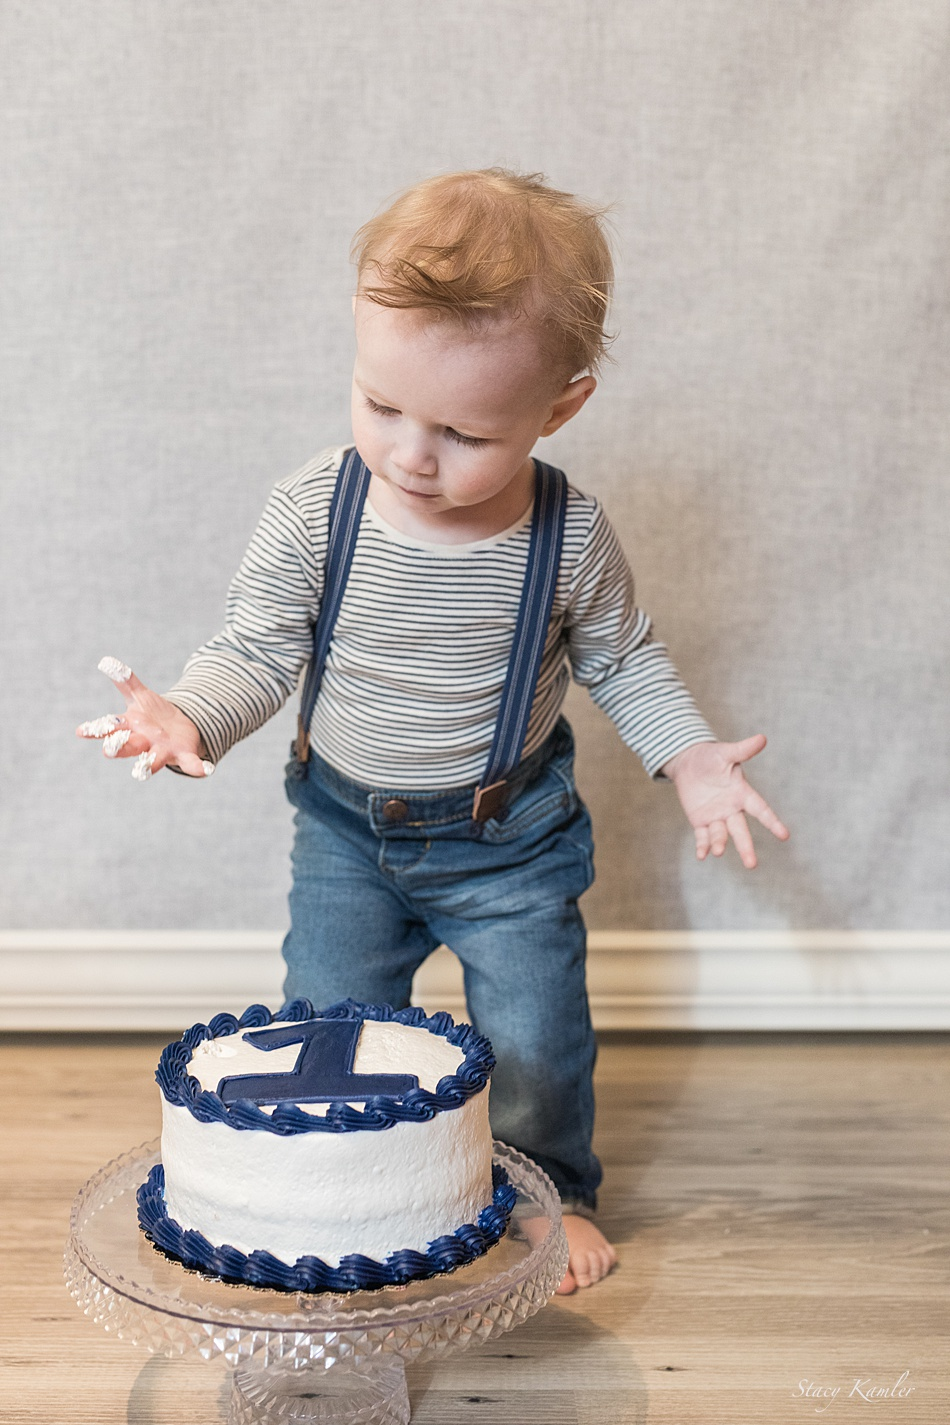 Cake smash for one year old